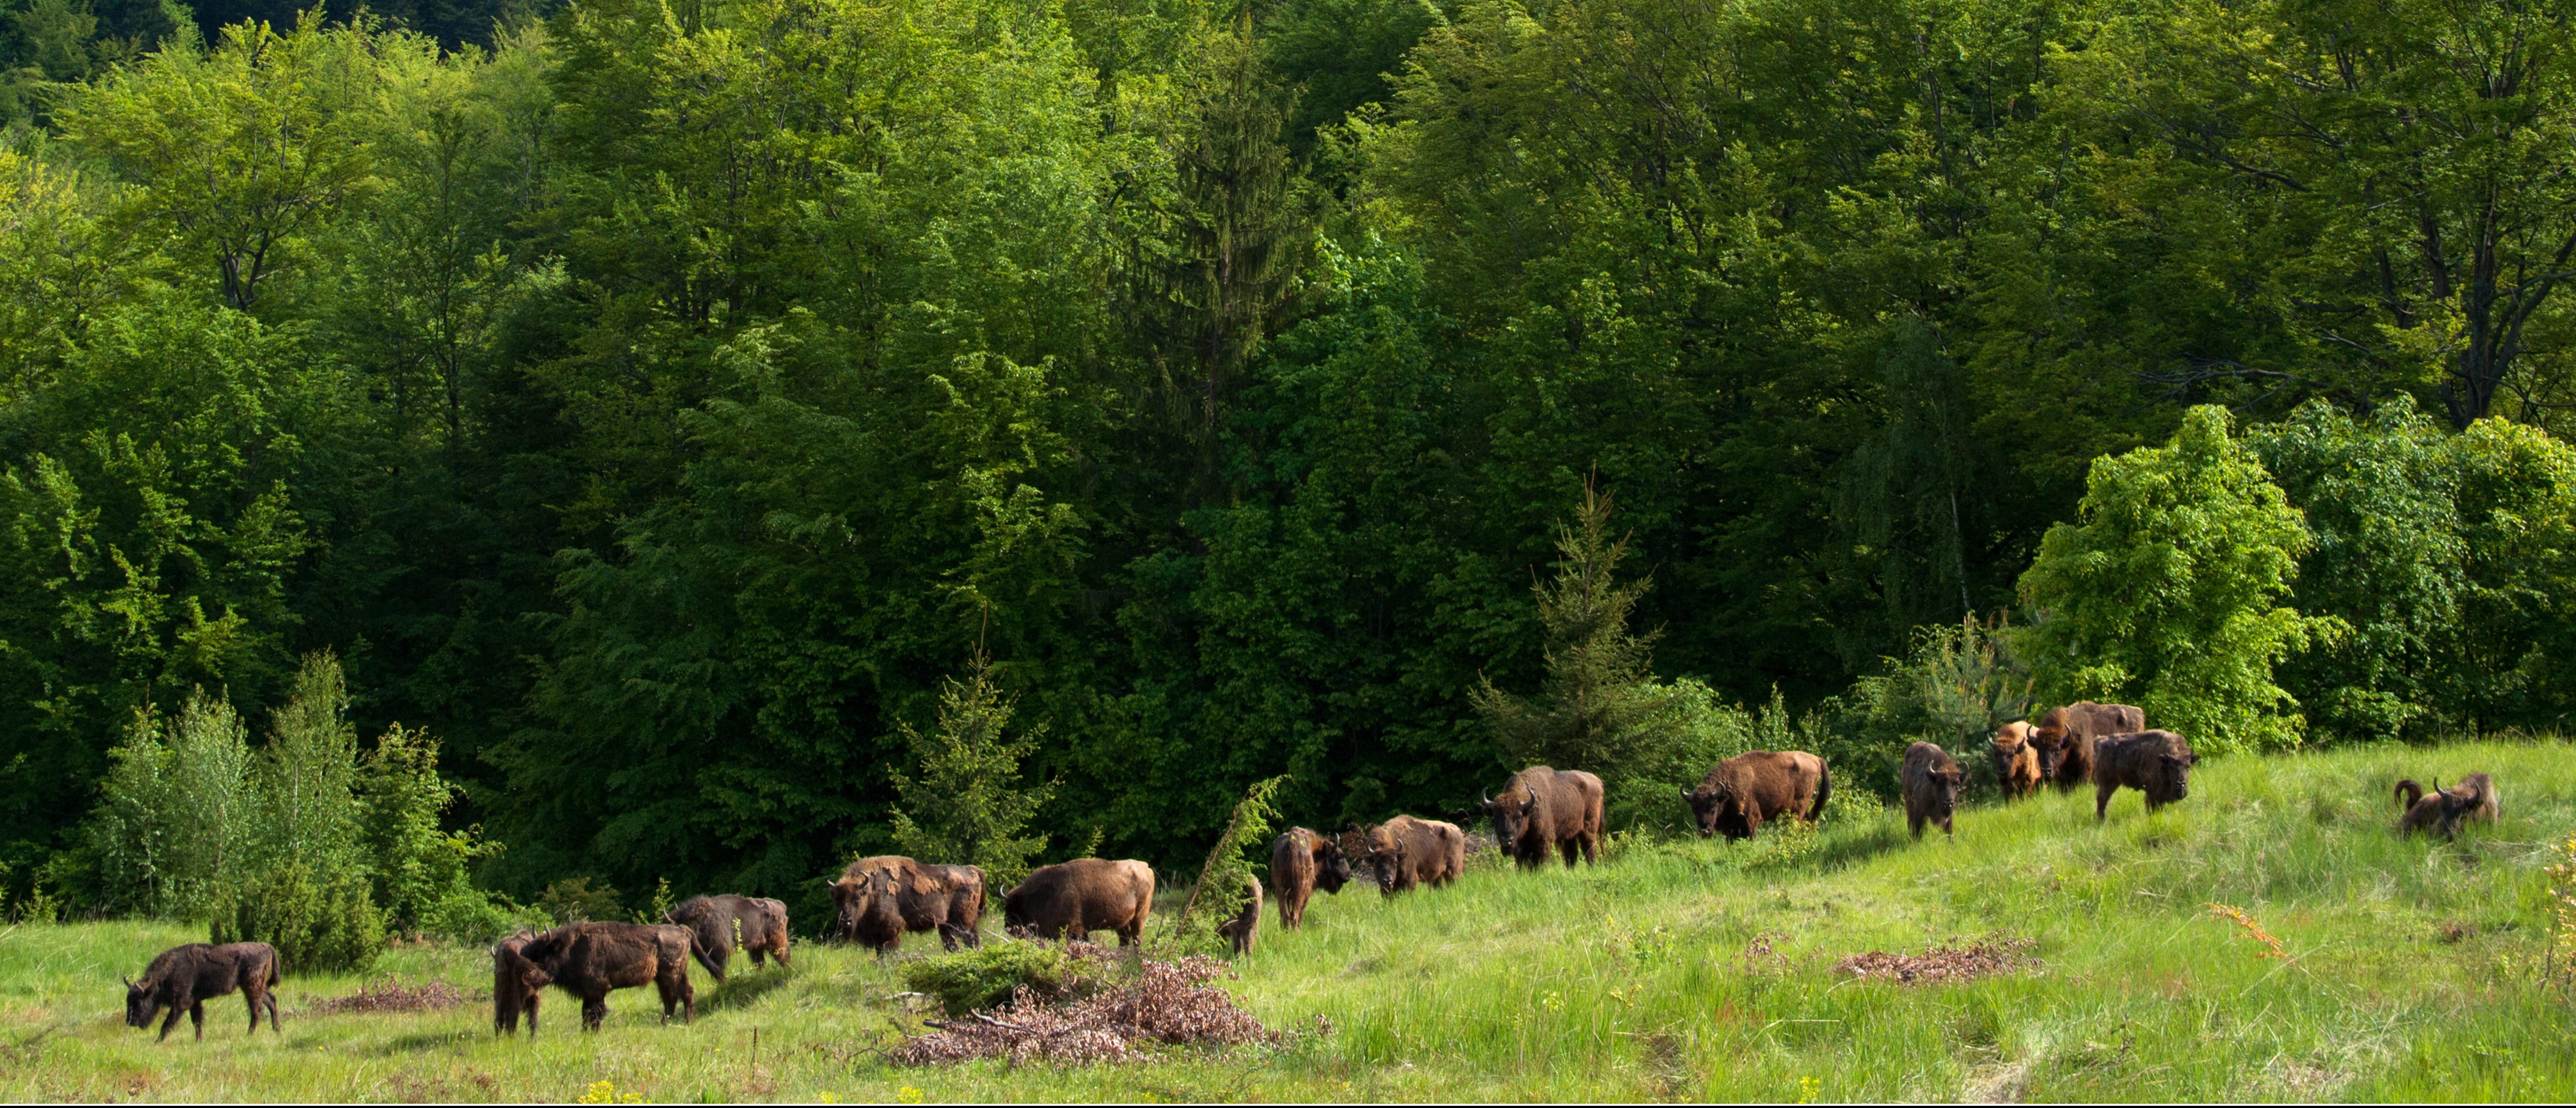 In the Southern Carpathians rewilding area in Romania, Rewilding Europe and WWF Romania are working hard to ensure the connectivity and genetic diversity of reintroduced sub-populations of European bison.